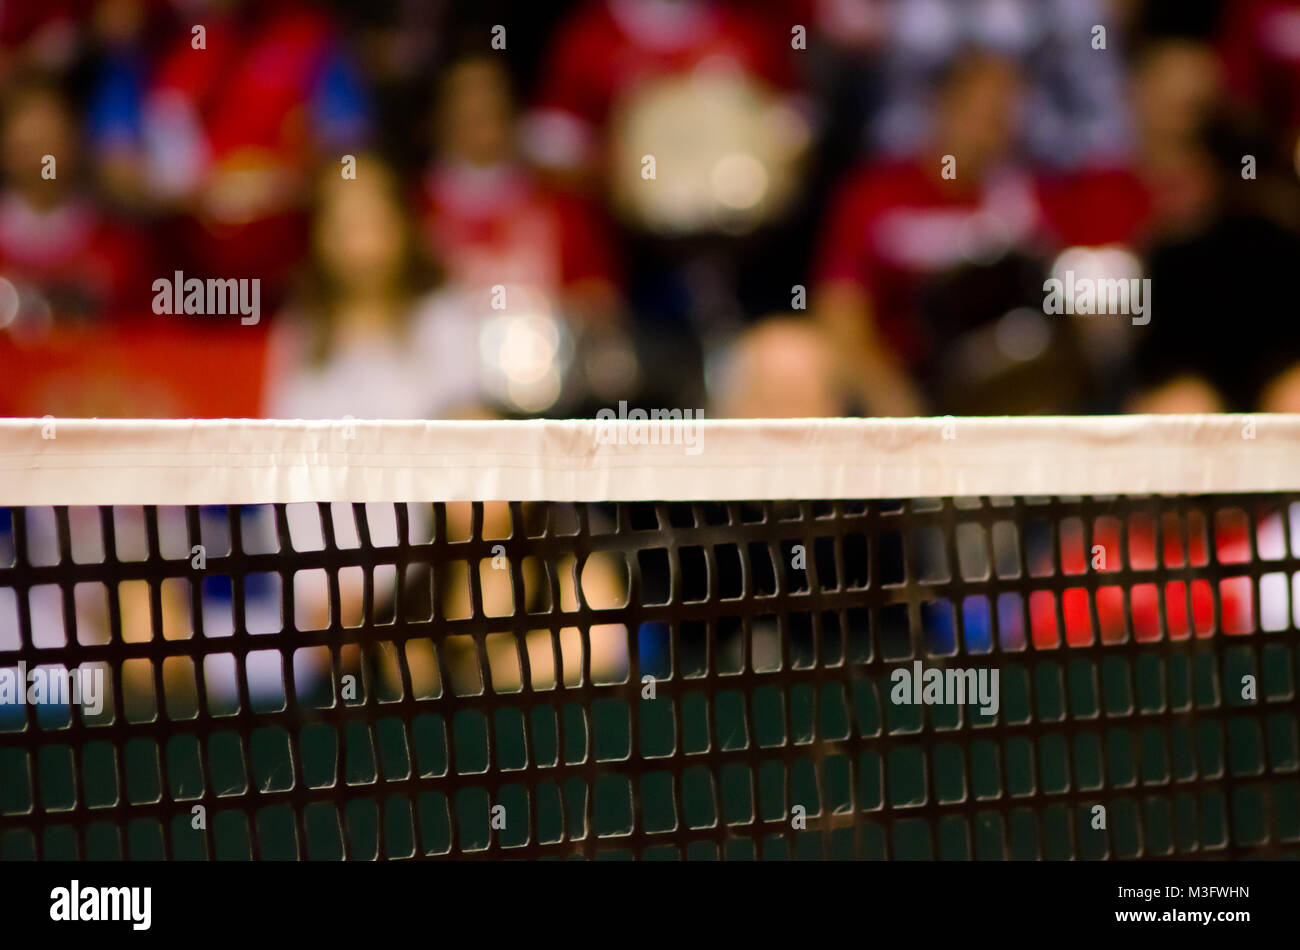 Tennis net close up, horizontal. blurred background - Stock Image